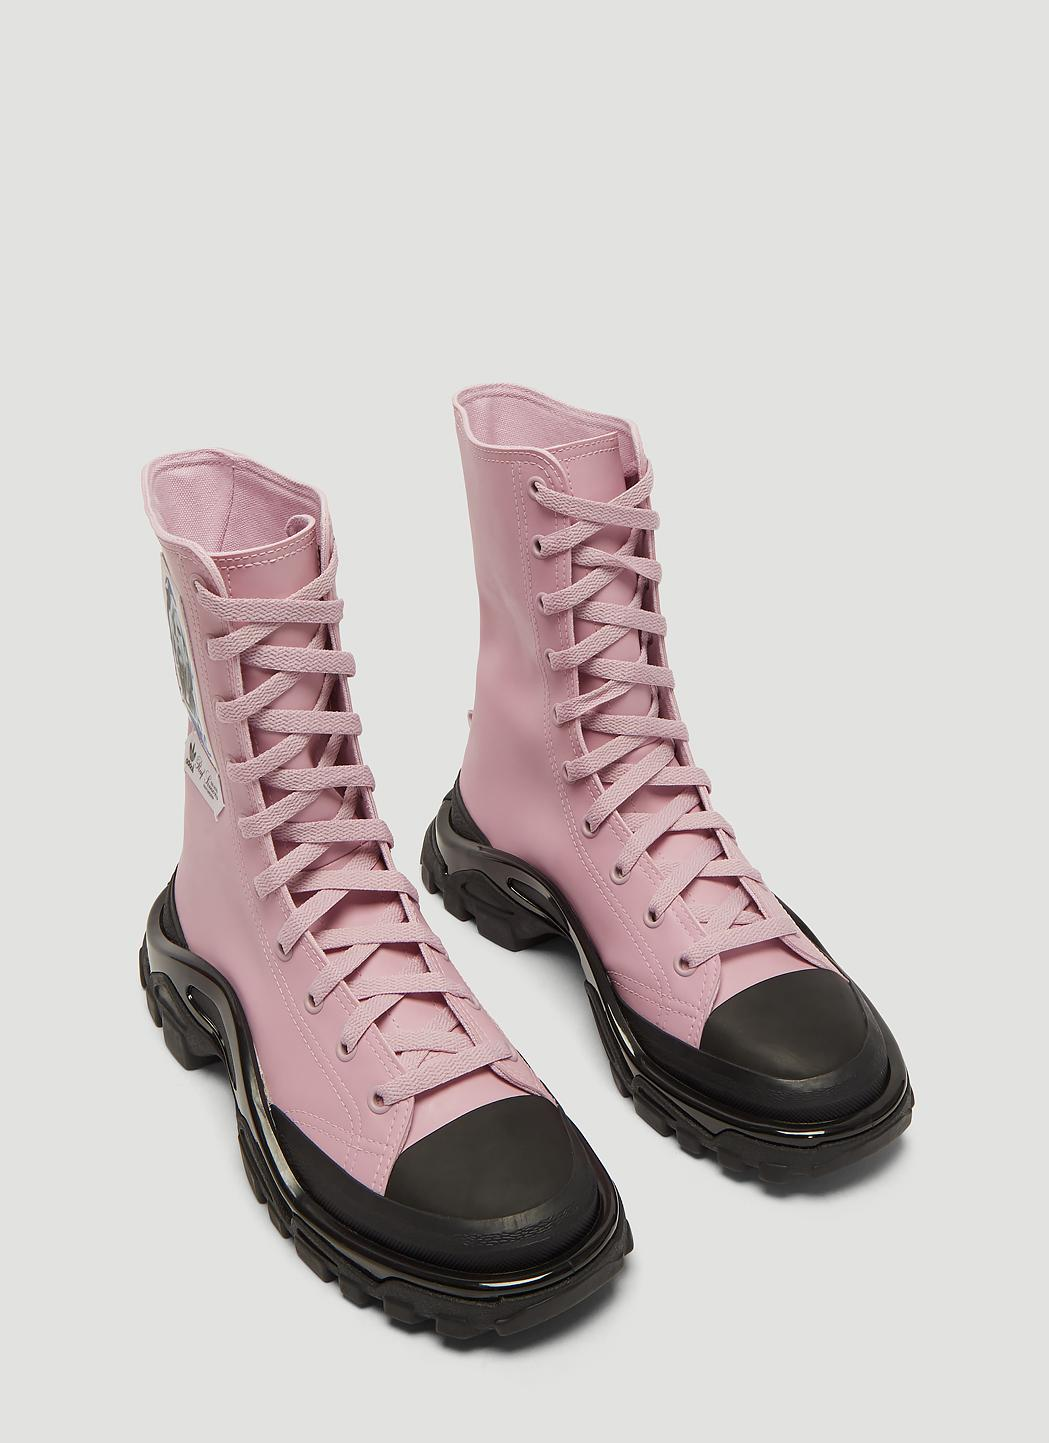 san francisco ab509 f1ee8 Adidas By Raf Simons - Detroit Boot Sneakers In Pink - Lyst. View fullscreen